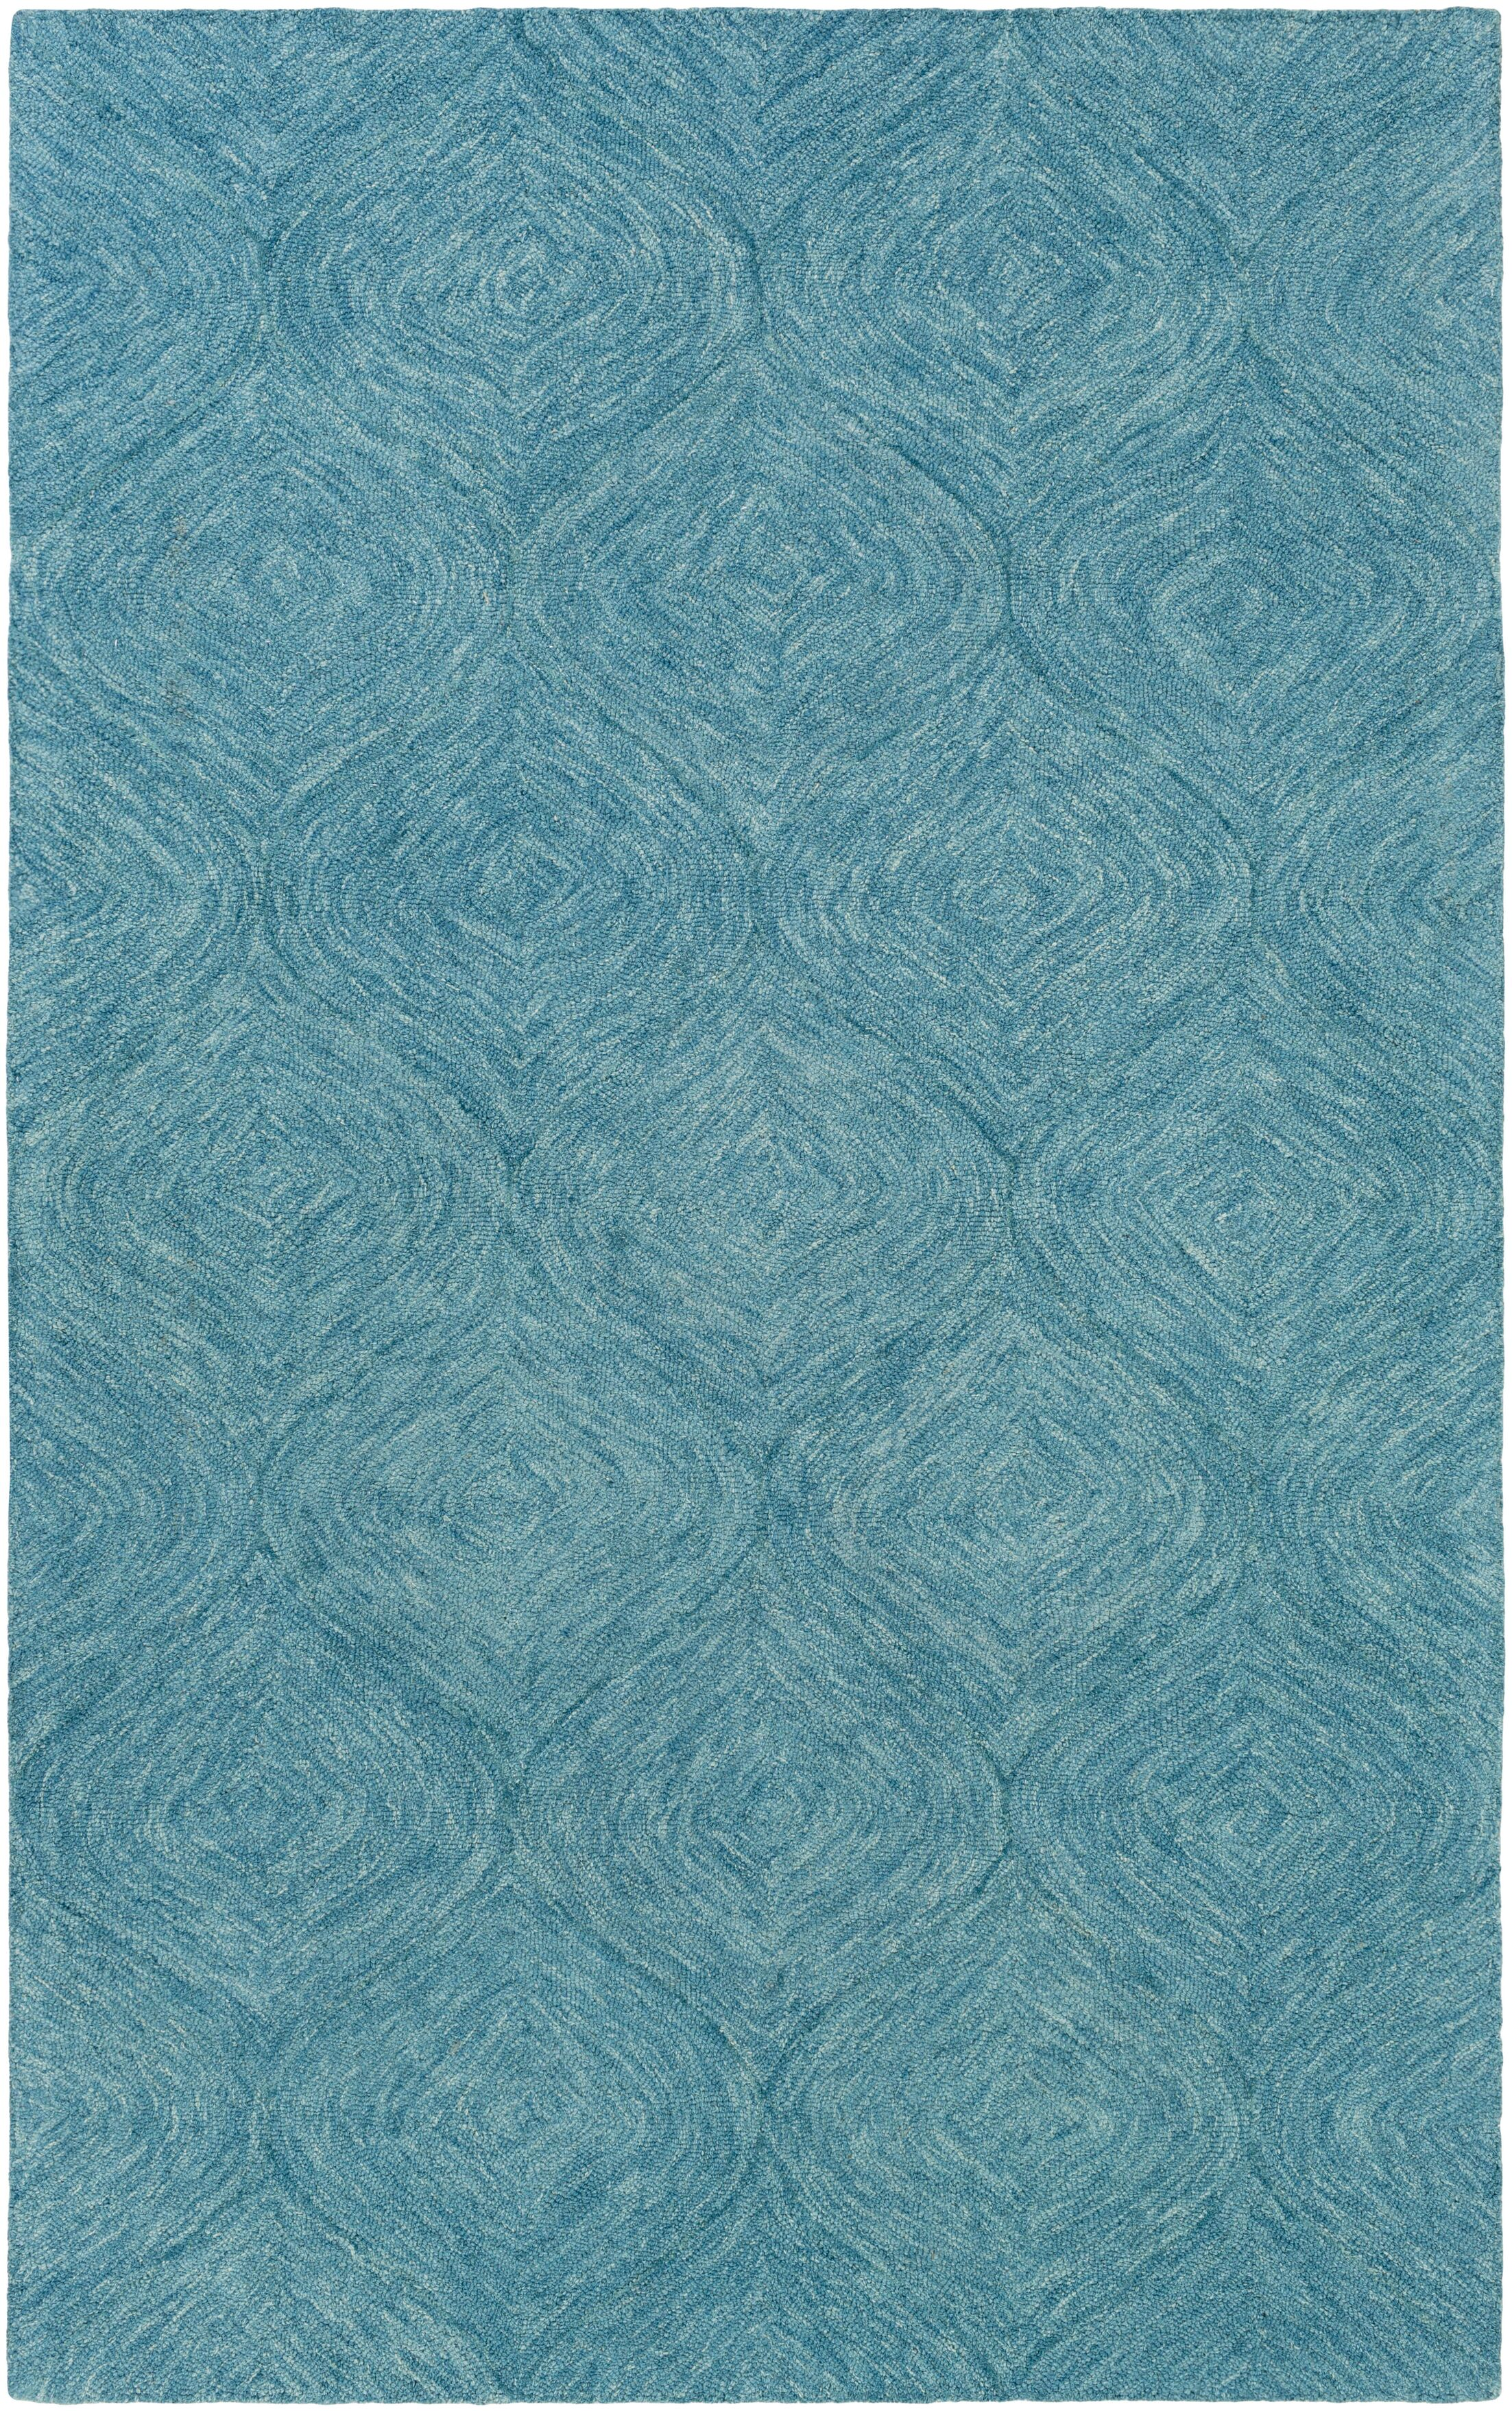 Bloch Hand-Tufted Turquoise Area Rug Rug Size: Rectangle 5' x 8'